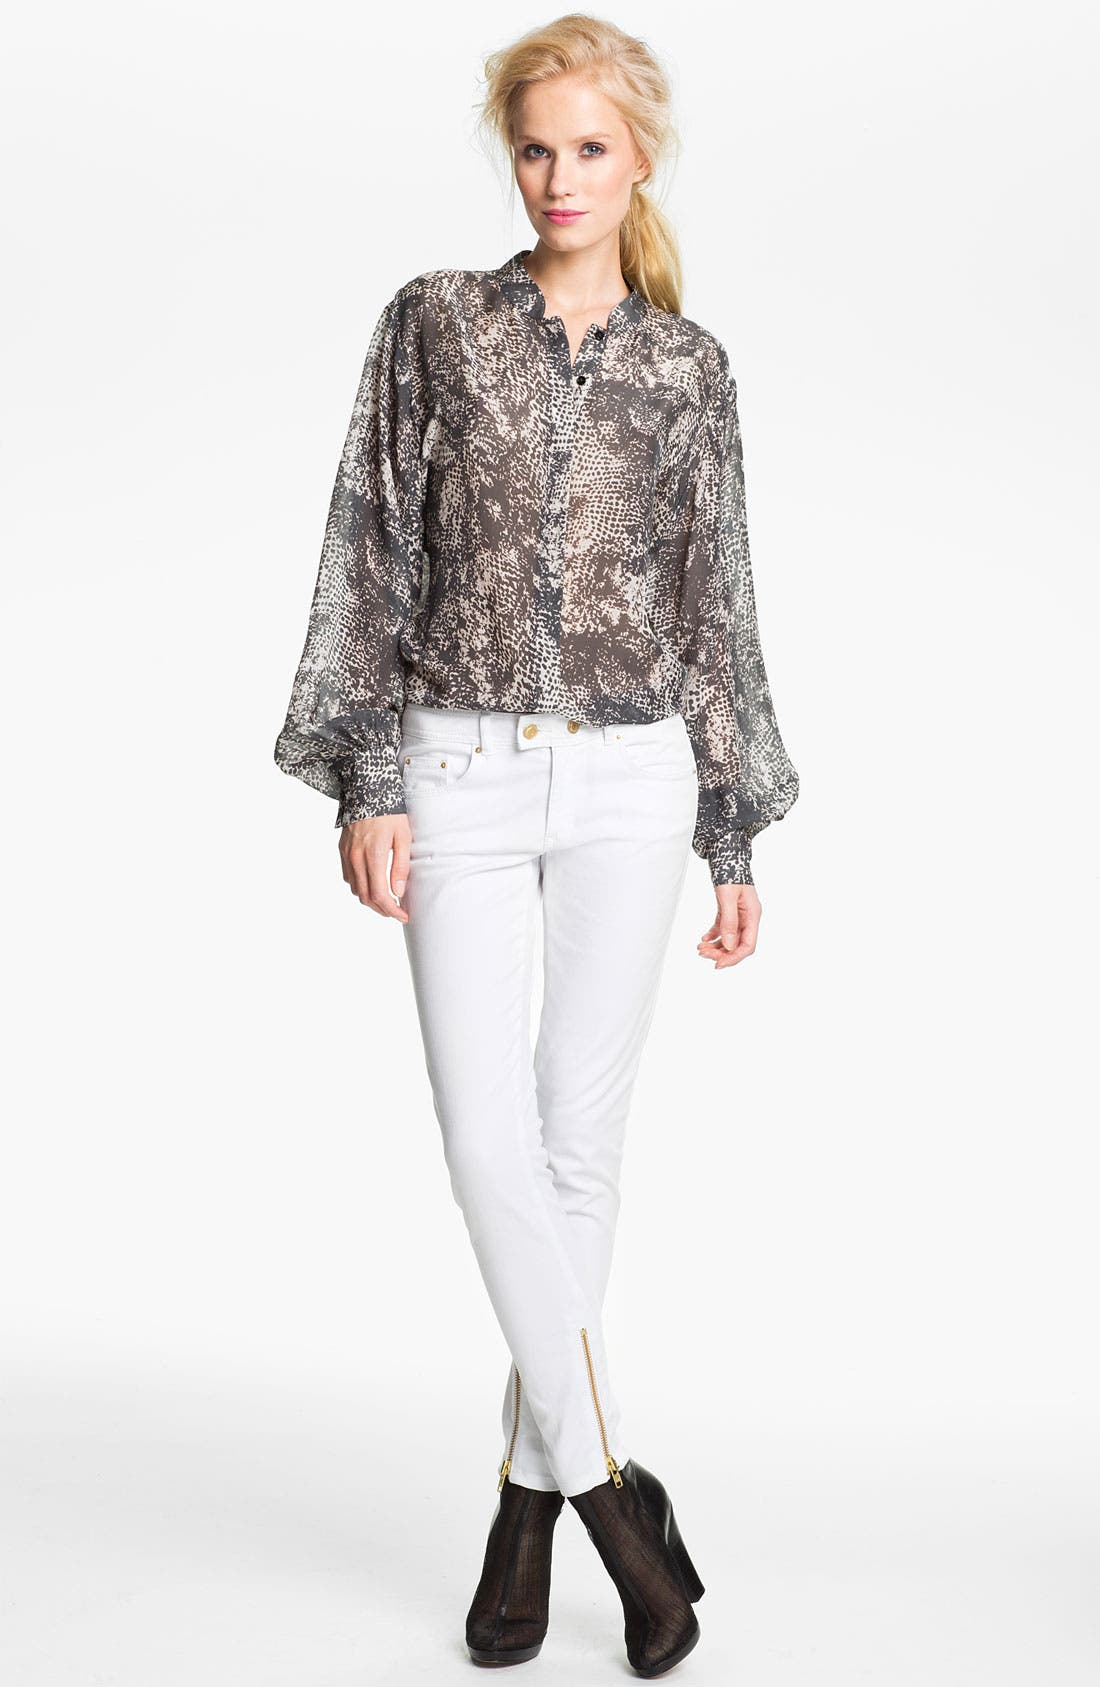 Alternate Image 1 Selected - Rachel Zoe 'Miley' Snake Print Dolman Sleeve Blouse